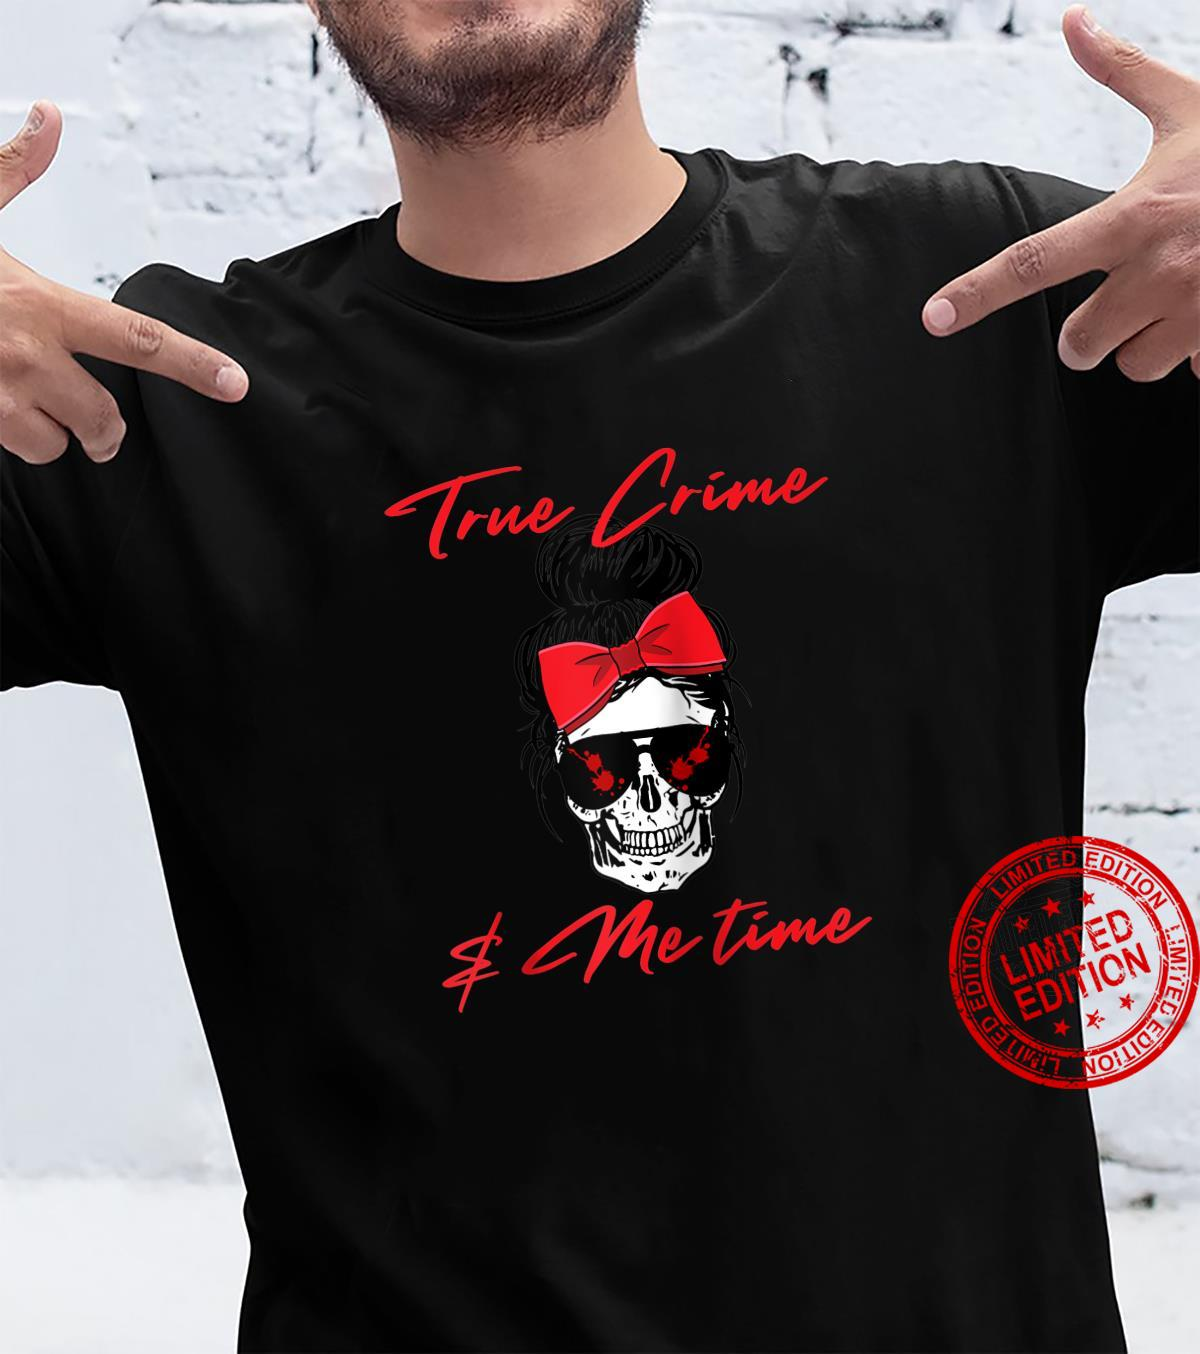 True Crime Merchandise Chill Time Wine Time Me Time Shirt